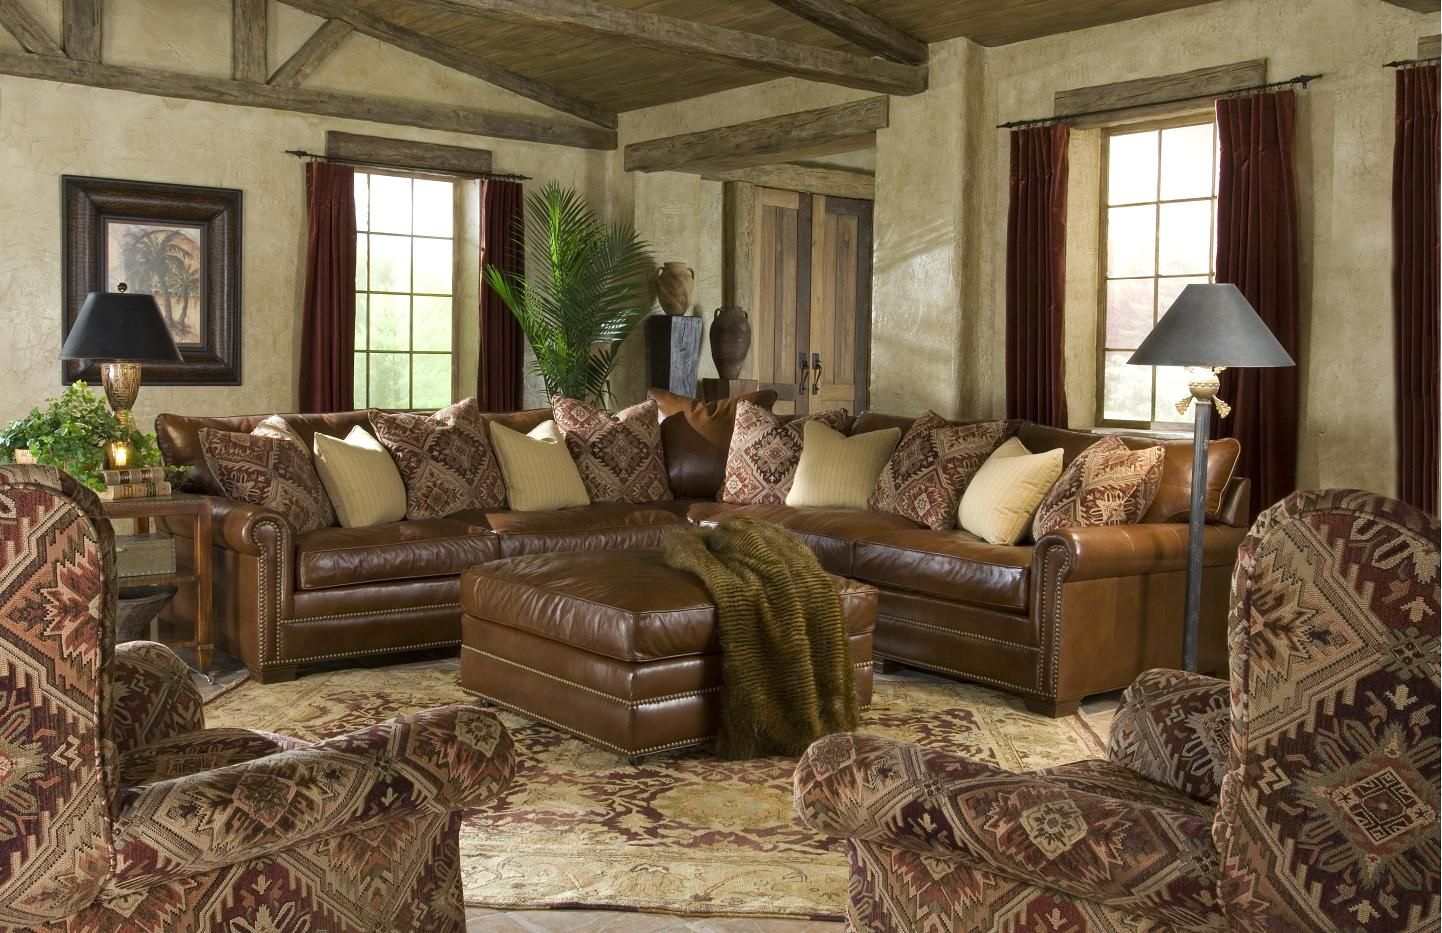 Old World Living Room Design   Google Search